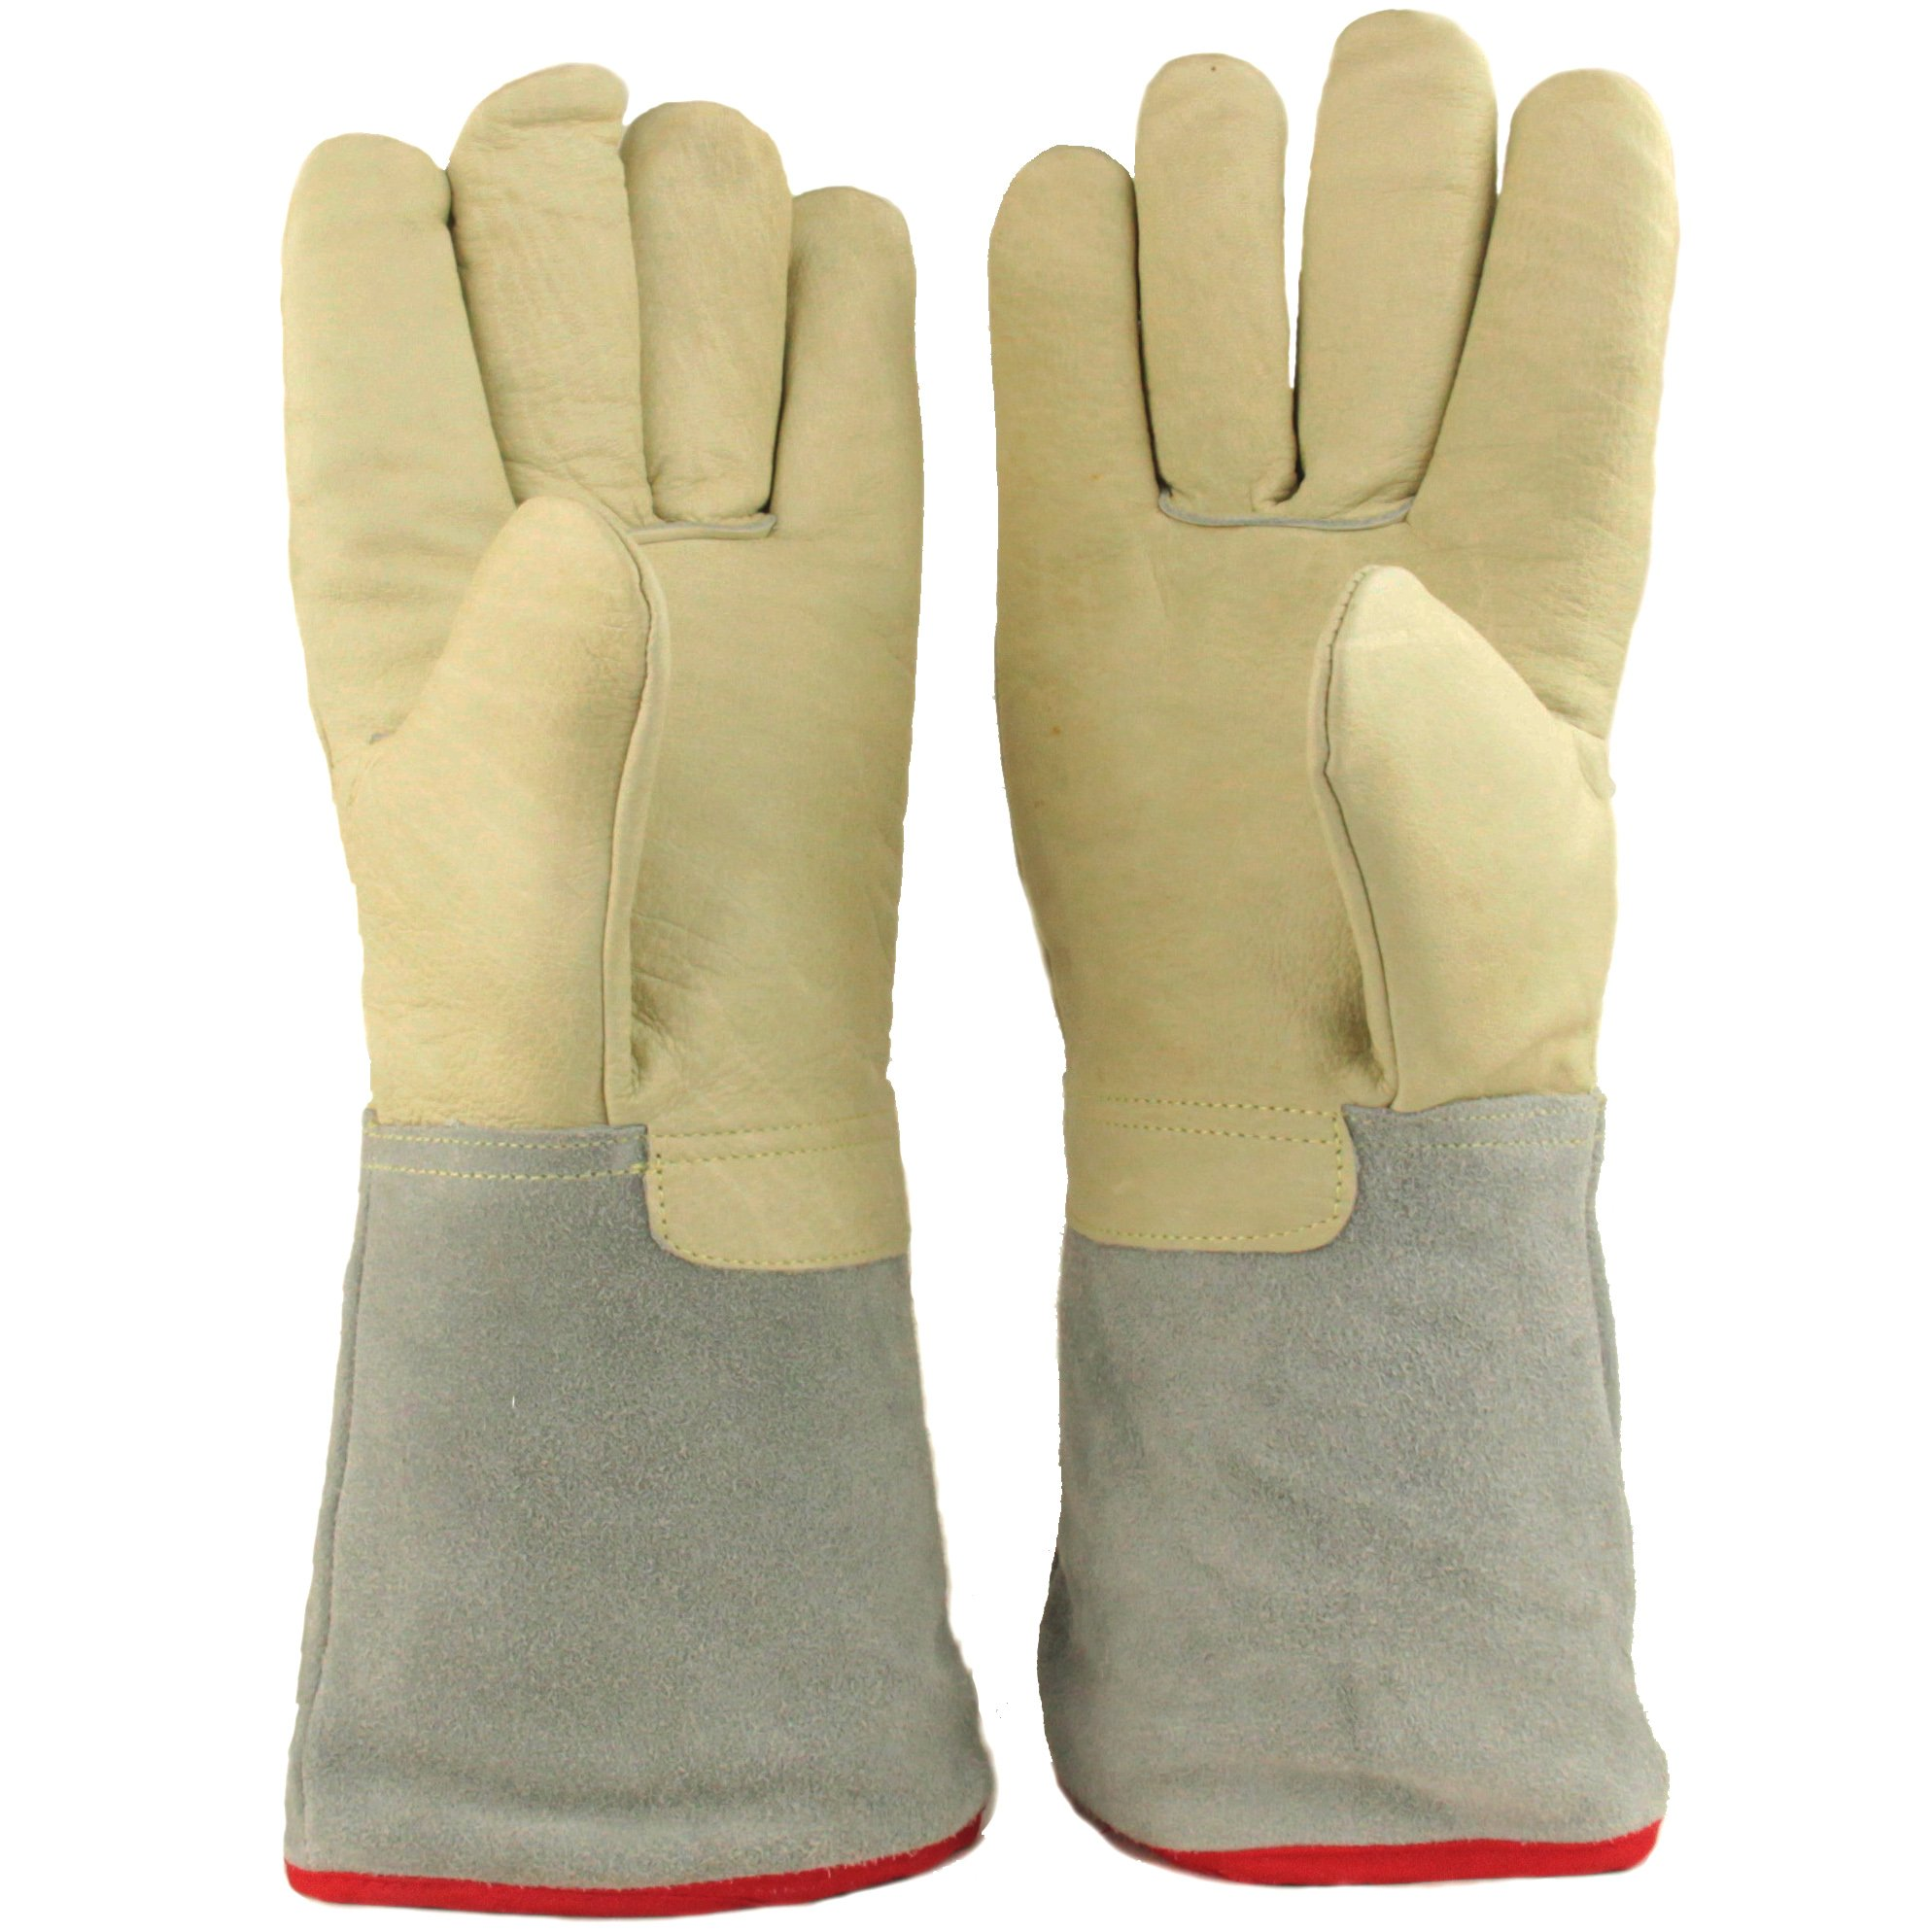 13.8''/35cm Long Cryogenic Gloves LN2 Liquid Nitrogen Protective Gloves from U.S. SOLID